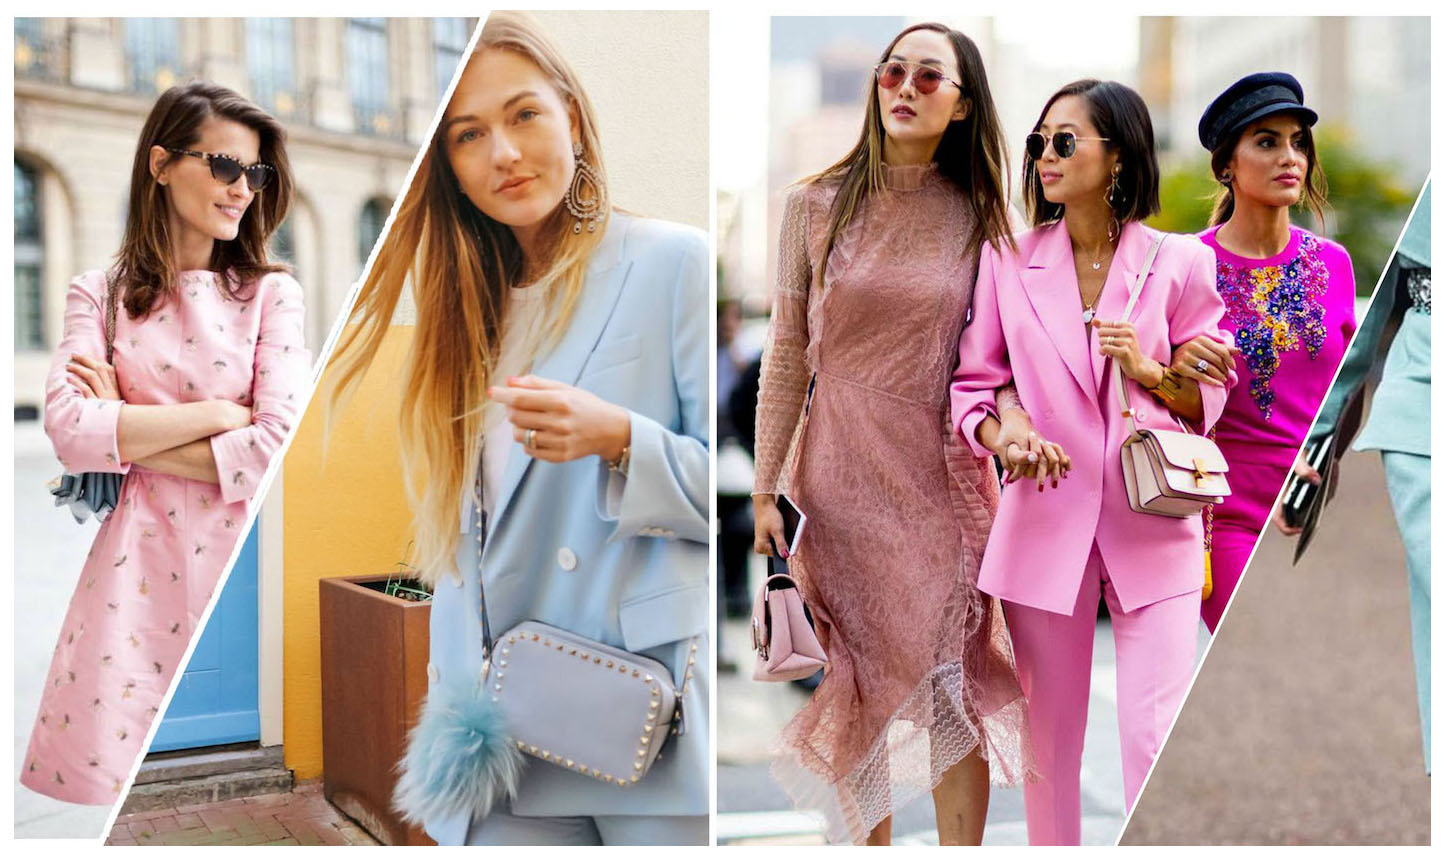 WHAT YOU NEED TO KNOW ABOUT WEARING PASTELS